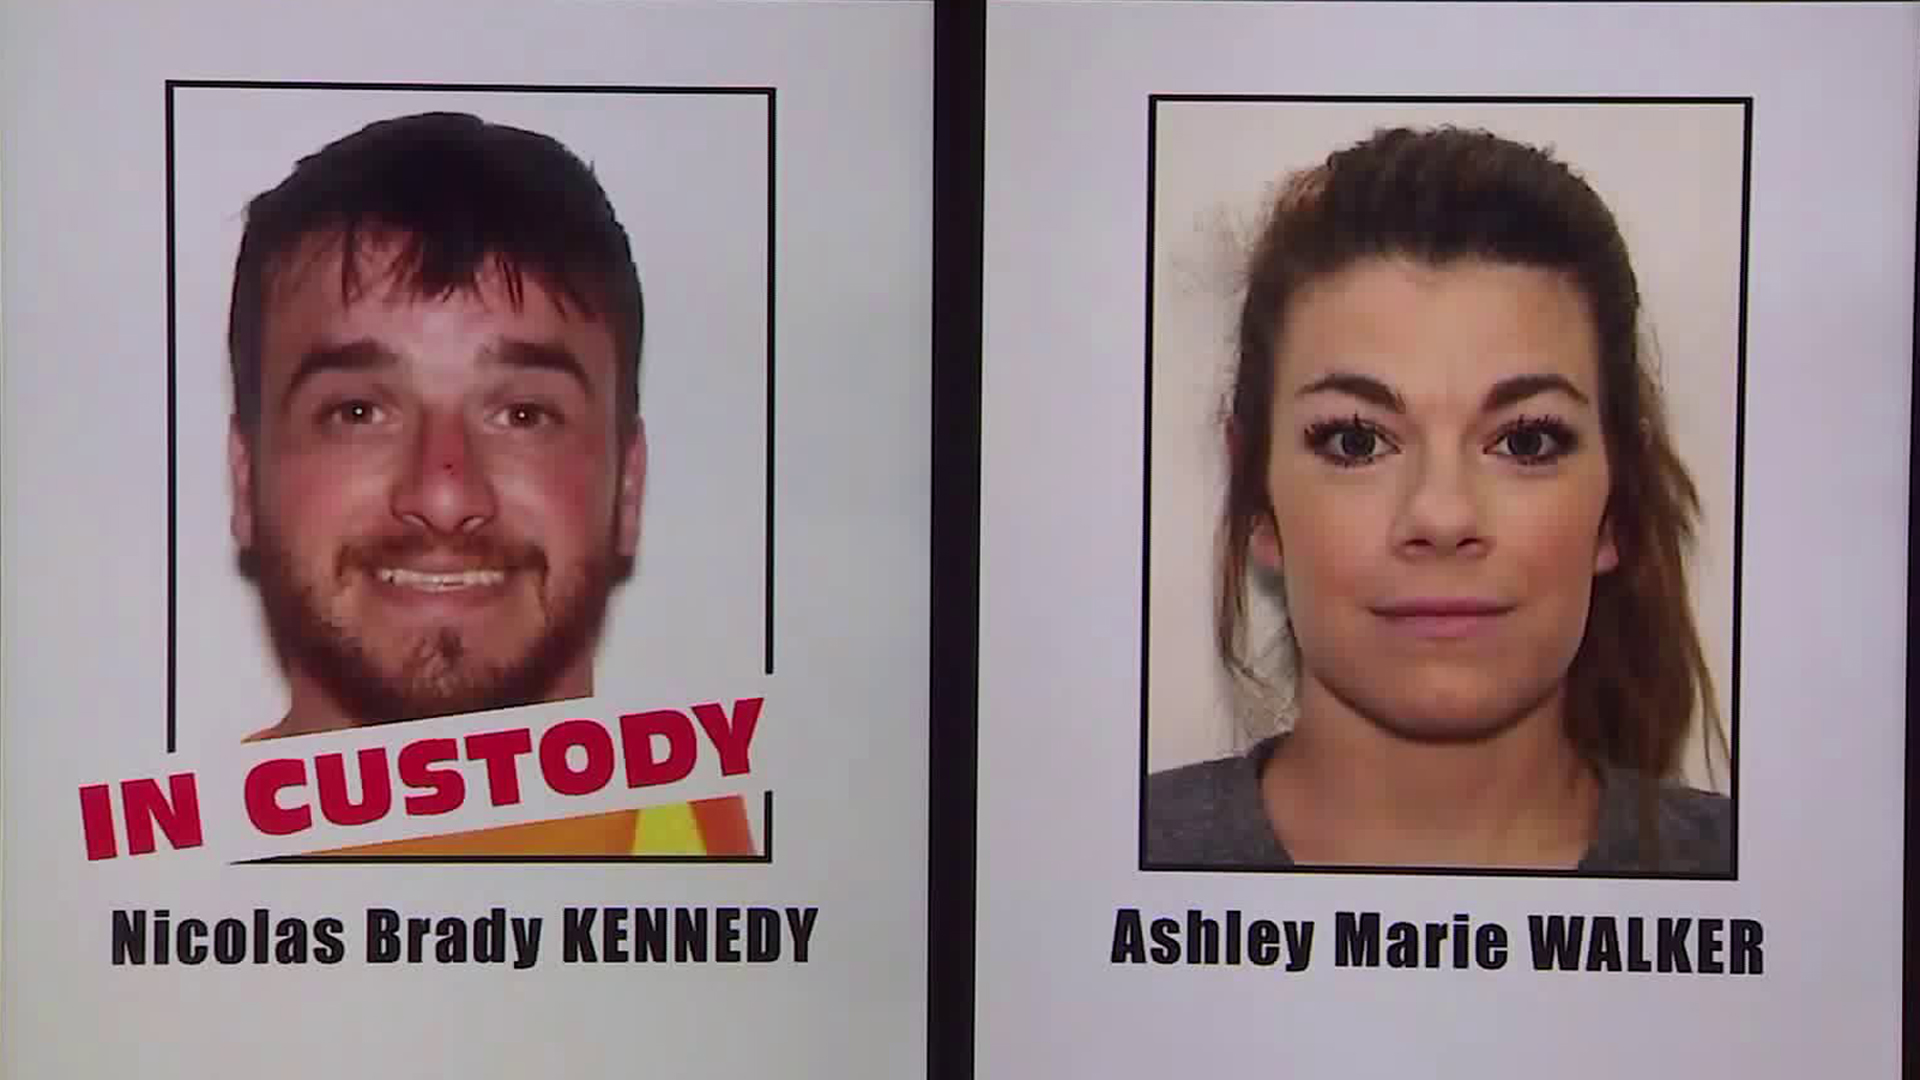 Nicolas Brady Kennedy and Ashley Marie Walker are shown in photos during a Los Angeles County Sheriff's Department news conference on Sept. 16, 2019. (Credit: KTLA)